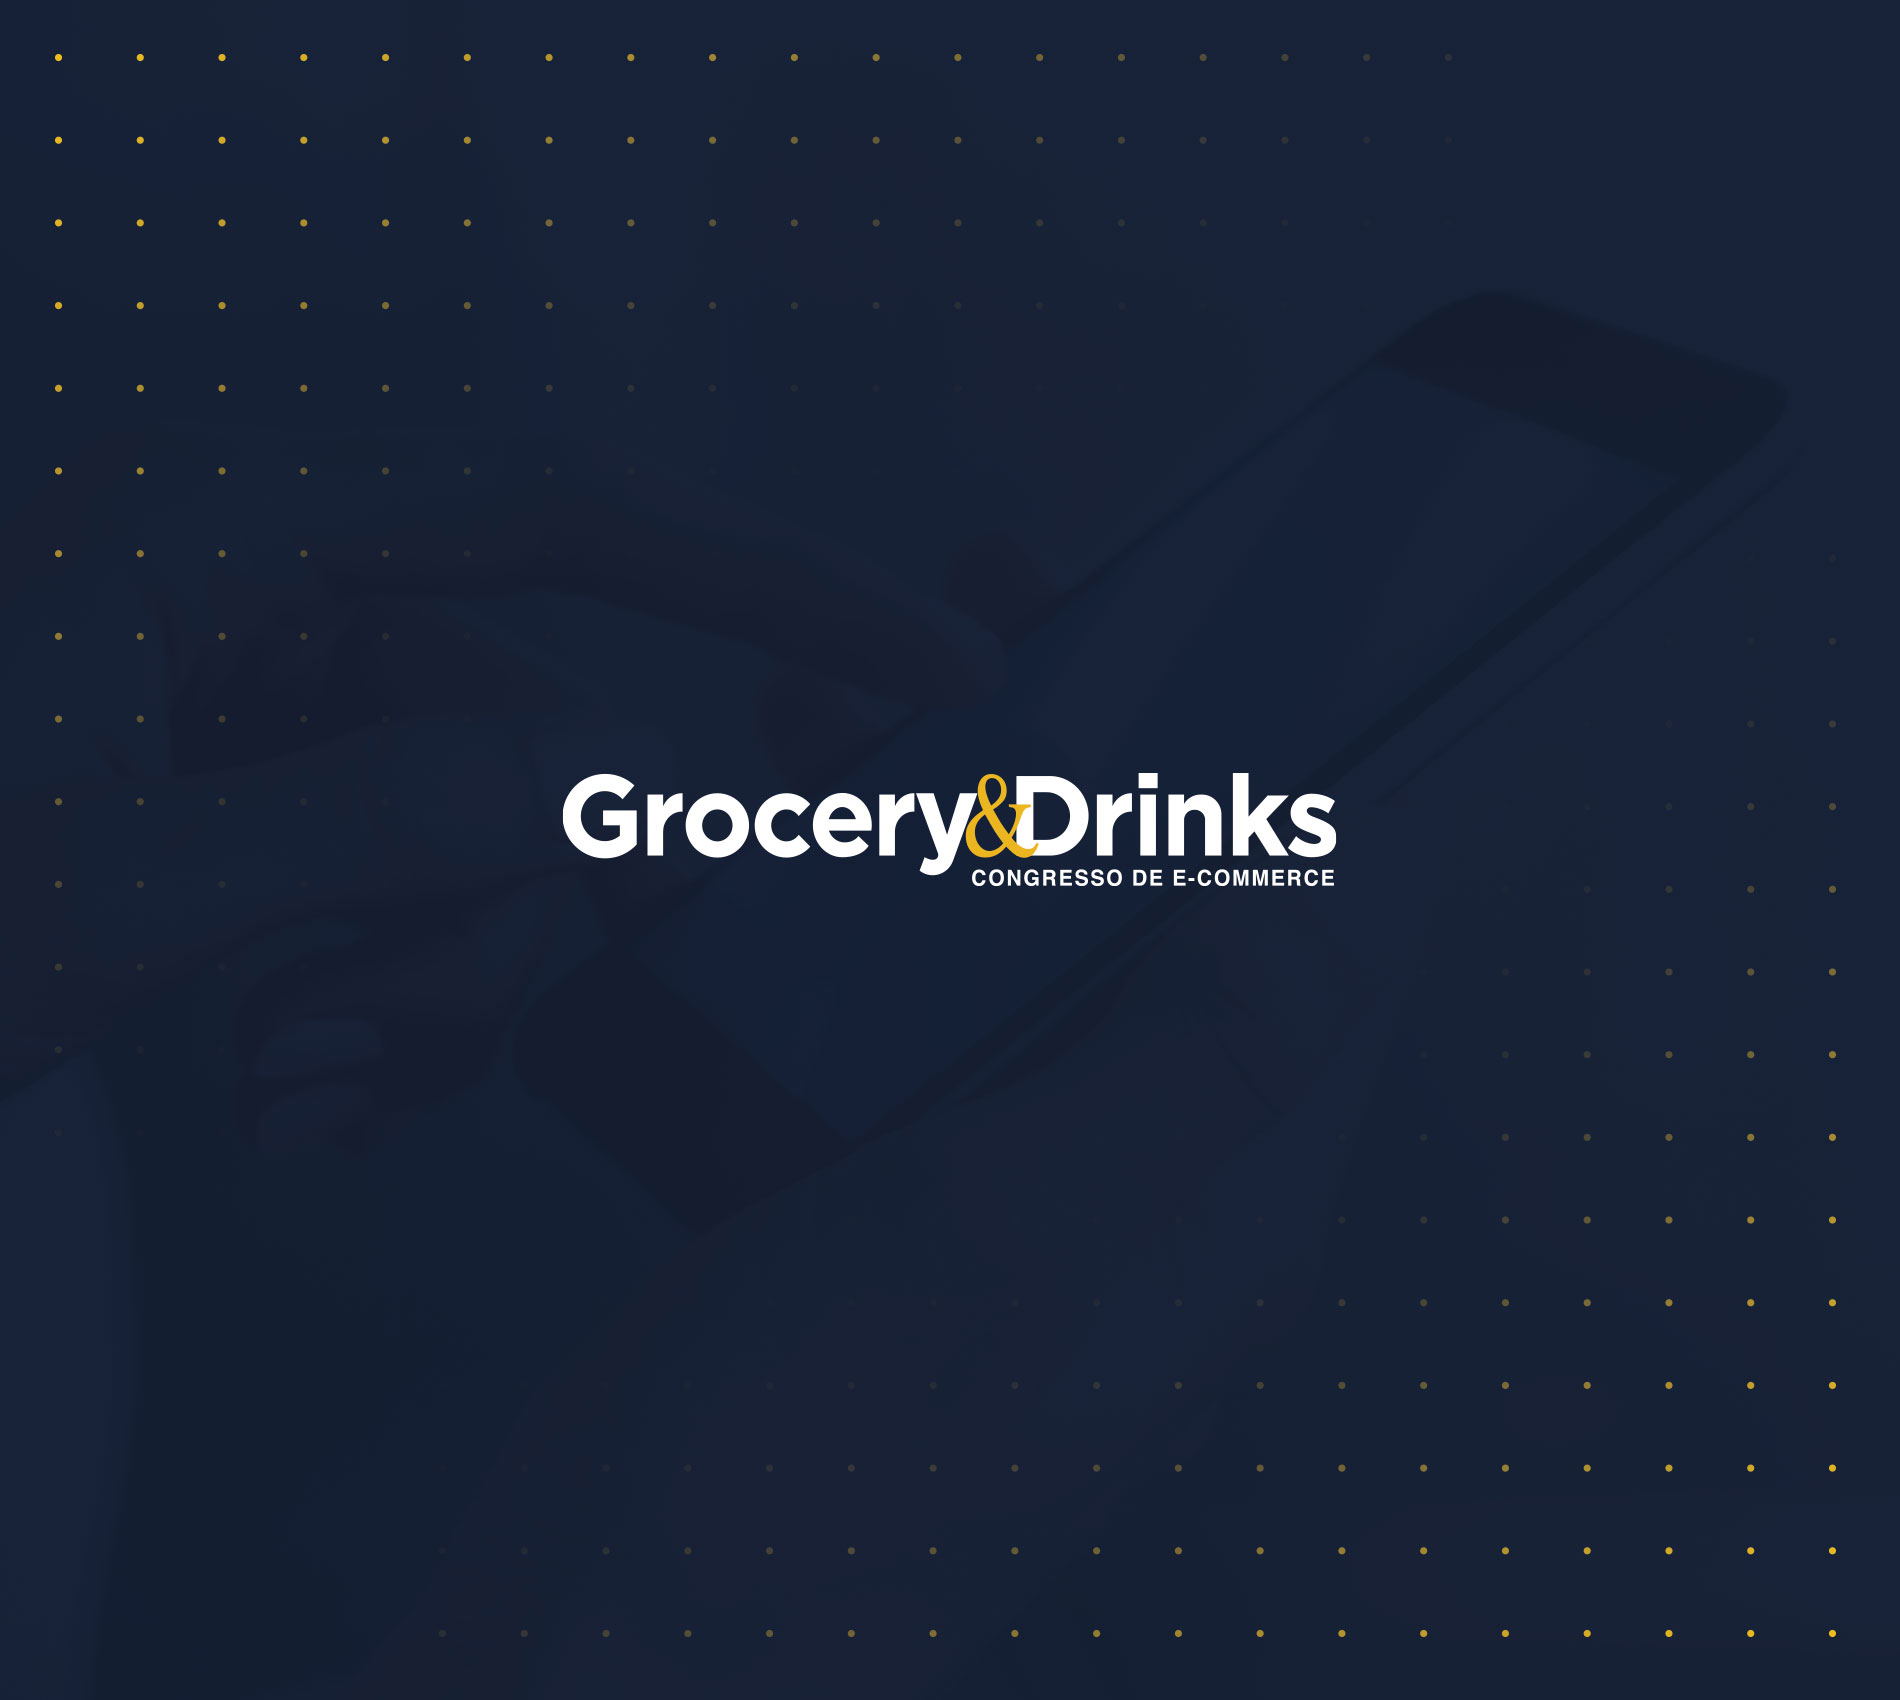 Grocery & Drinks 2020